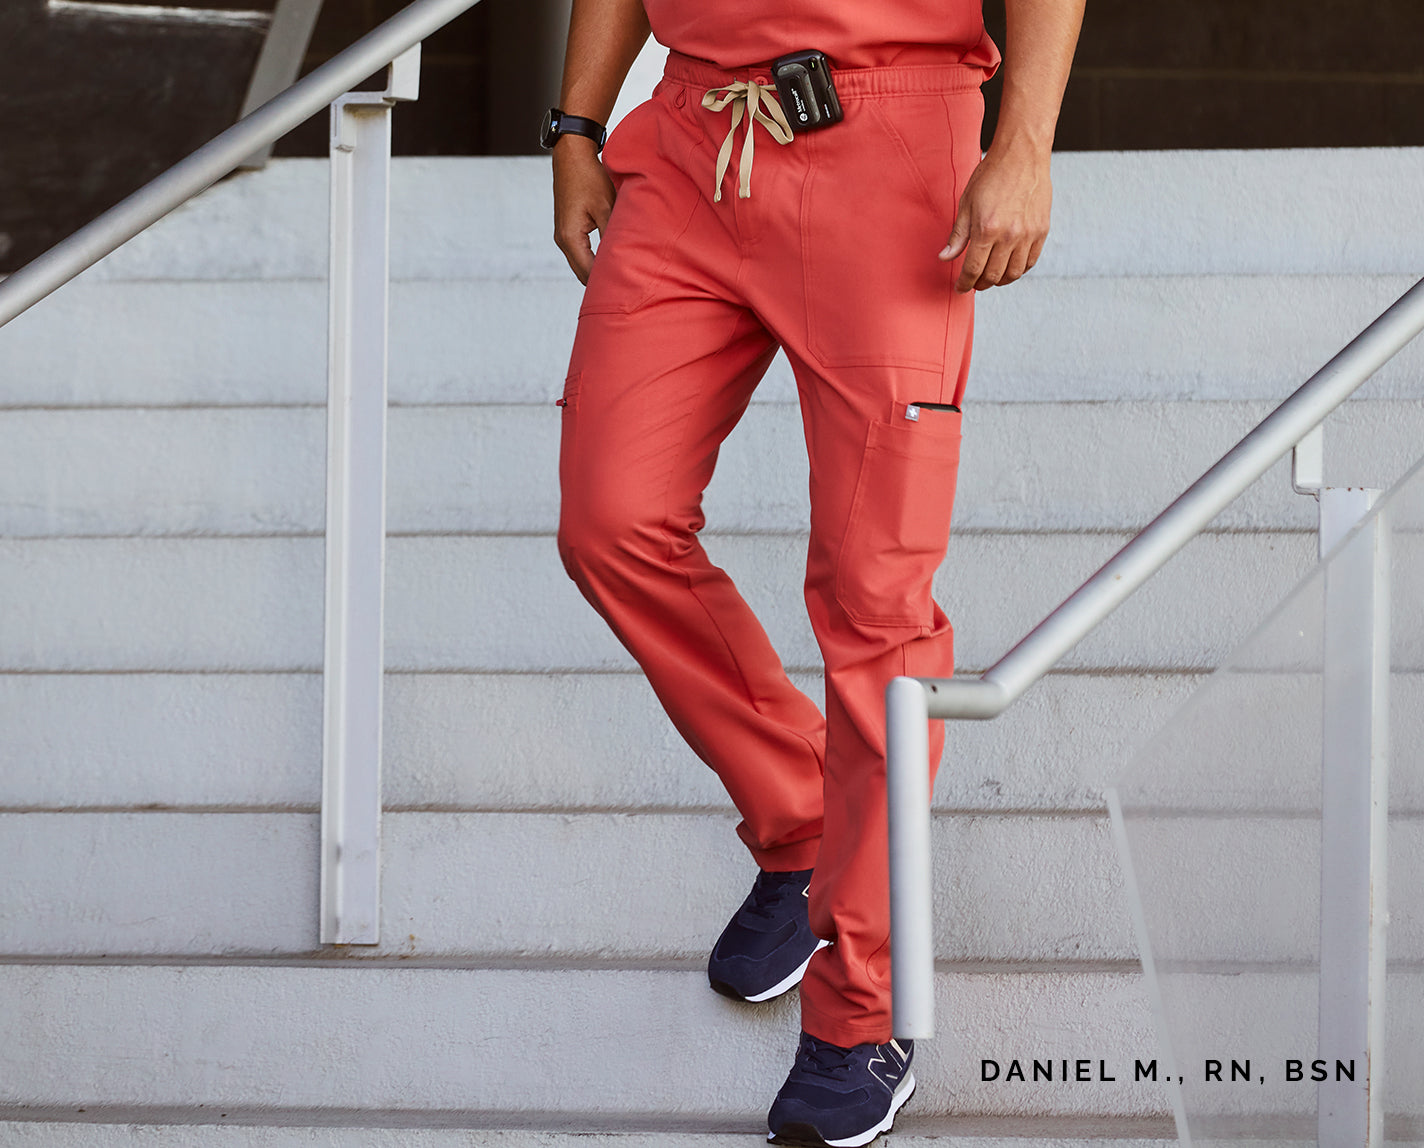 Super fly. Comfort meets function with these easy-fitting cargos that feature a zipper fly, button closure and our proprietary FIONx fabric. Want more? They've got nine incredibly useful pockets. Win. Win.